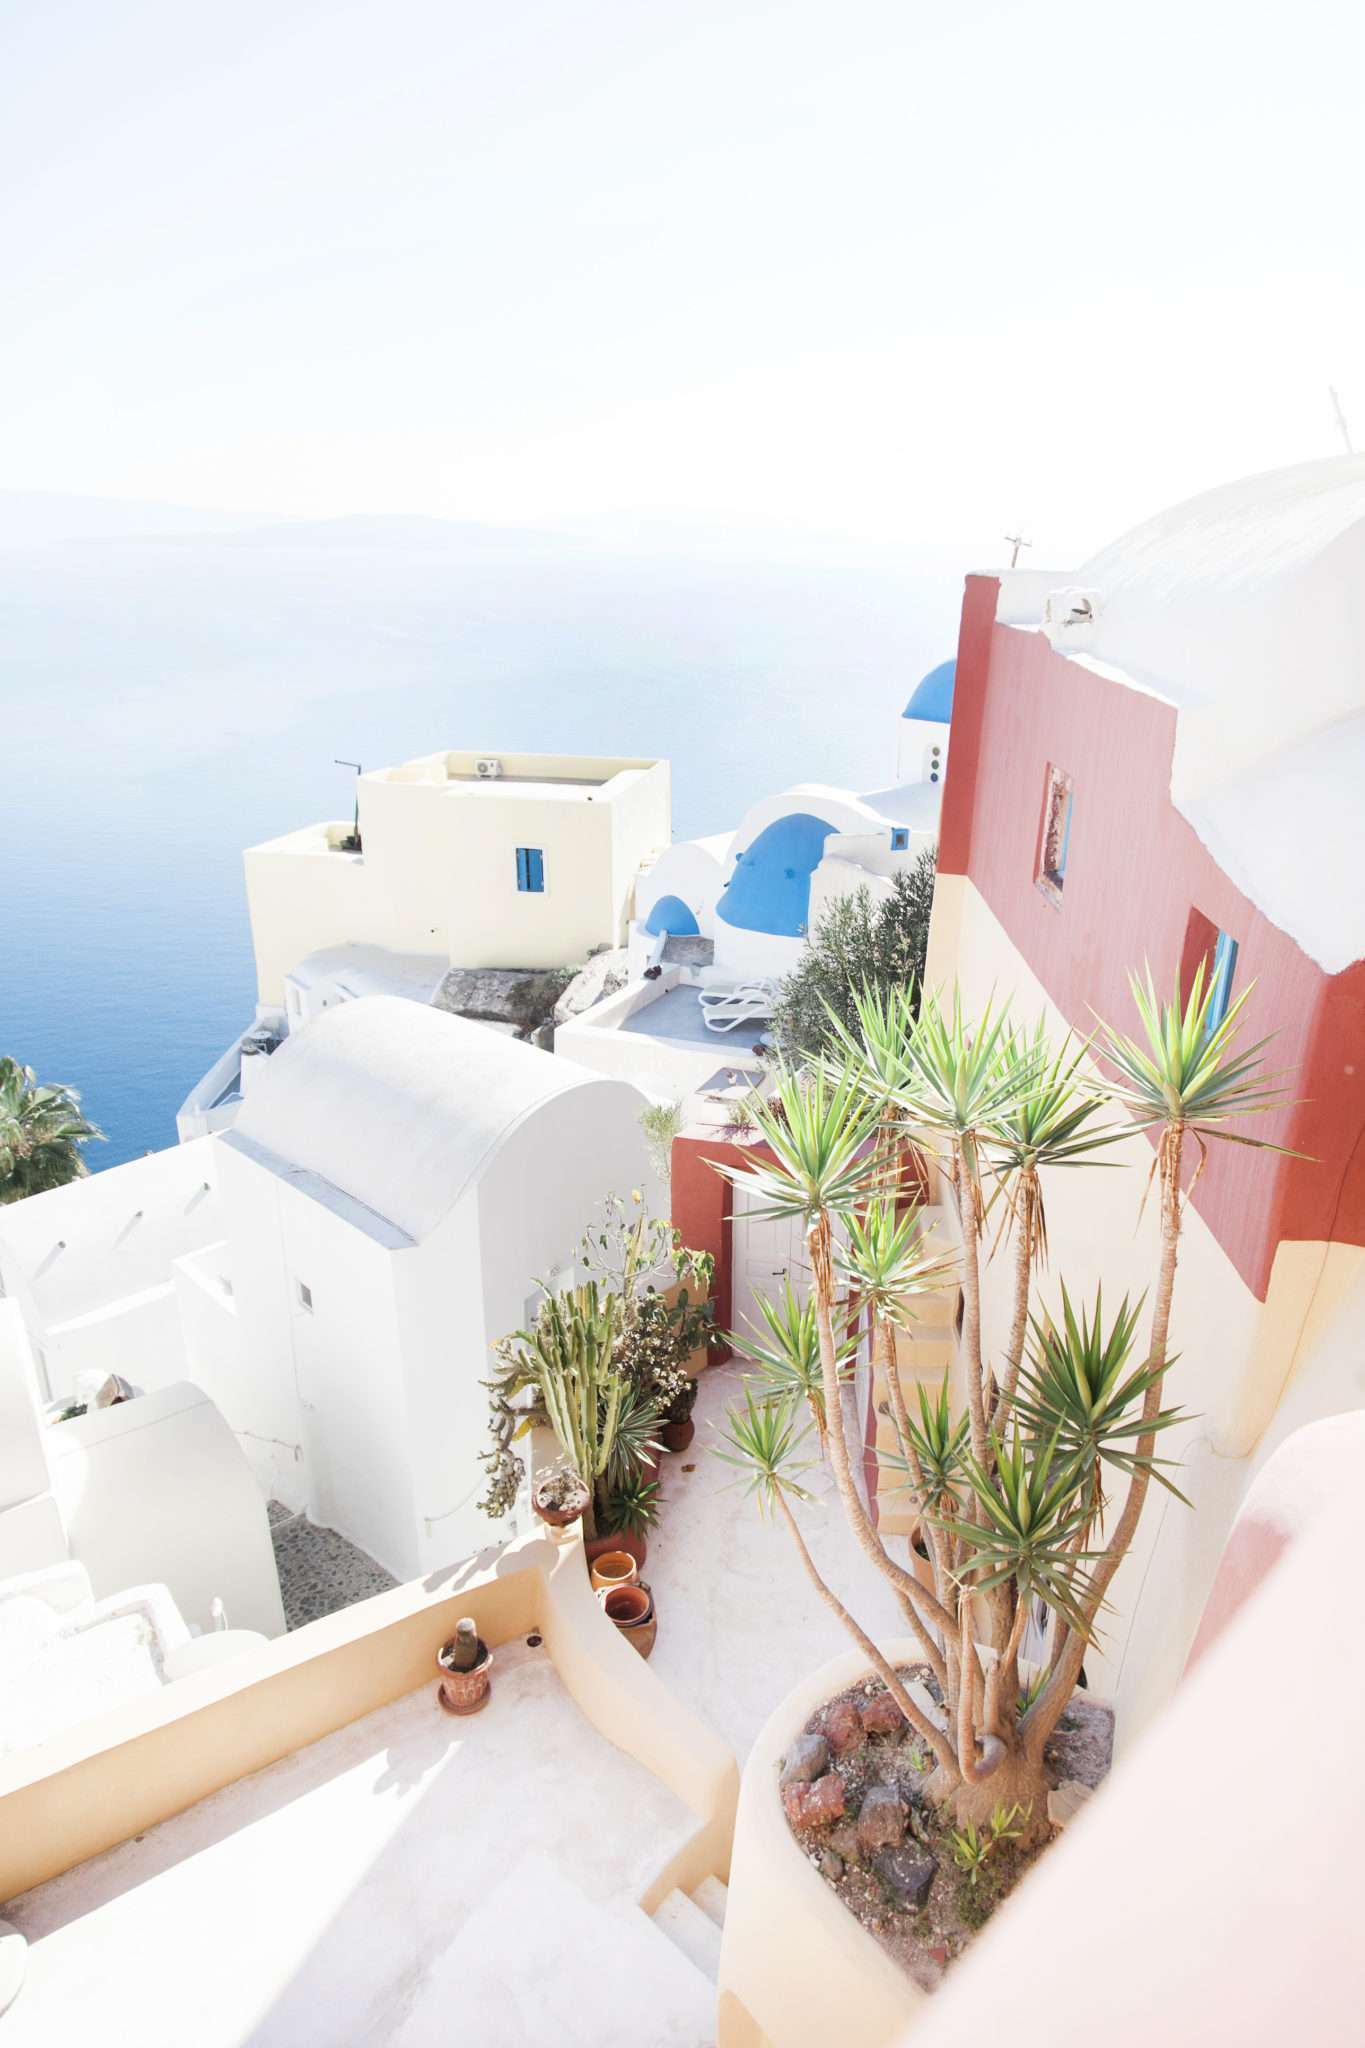 houses in santorini, greece destination wedding, greek wedding